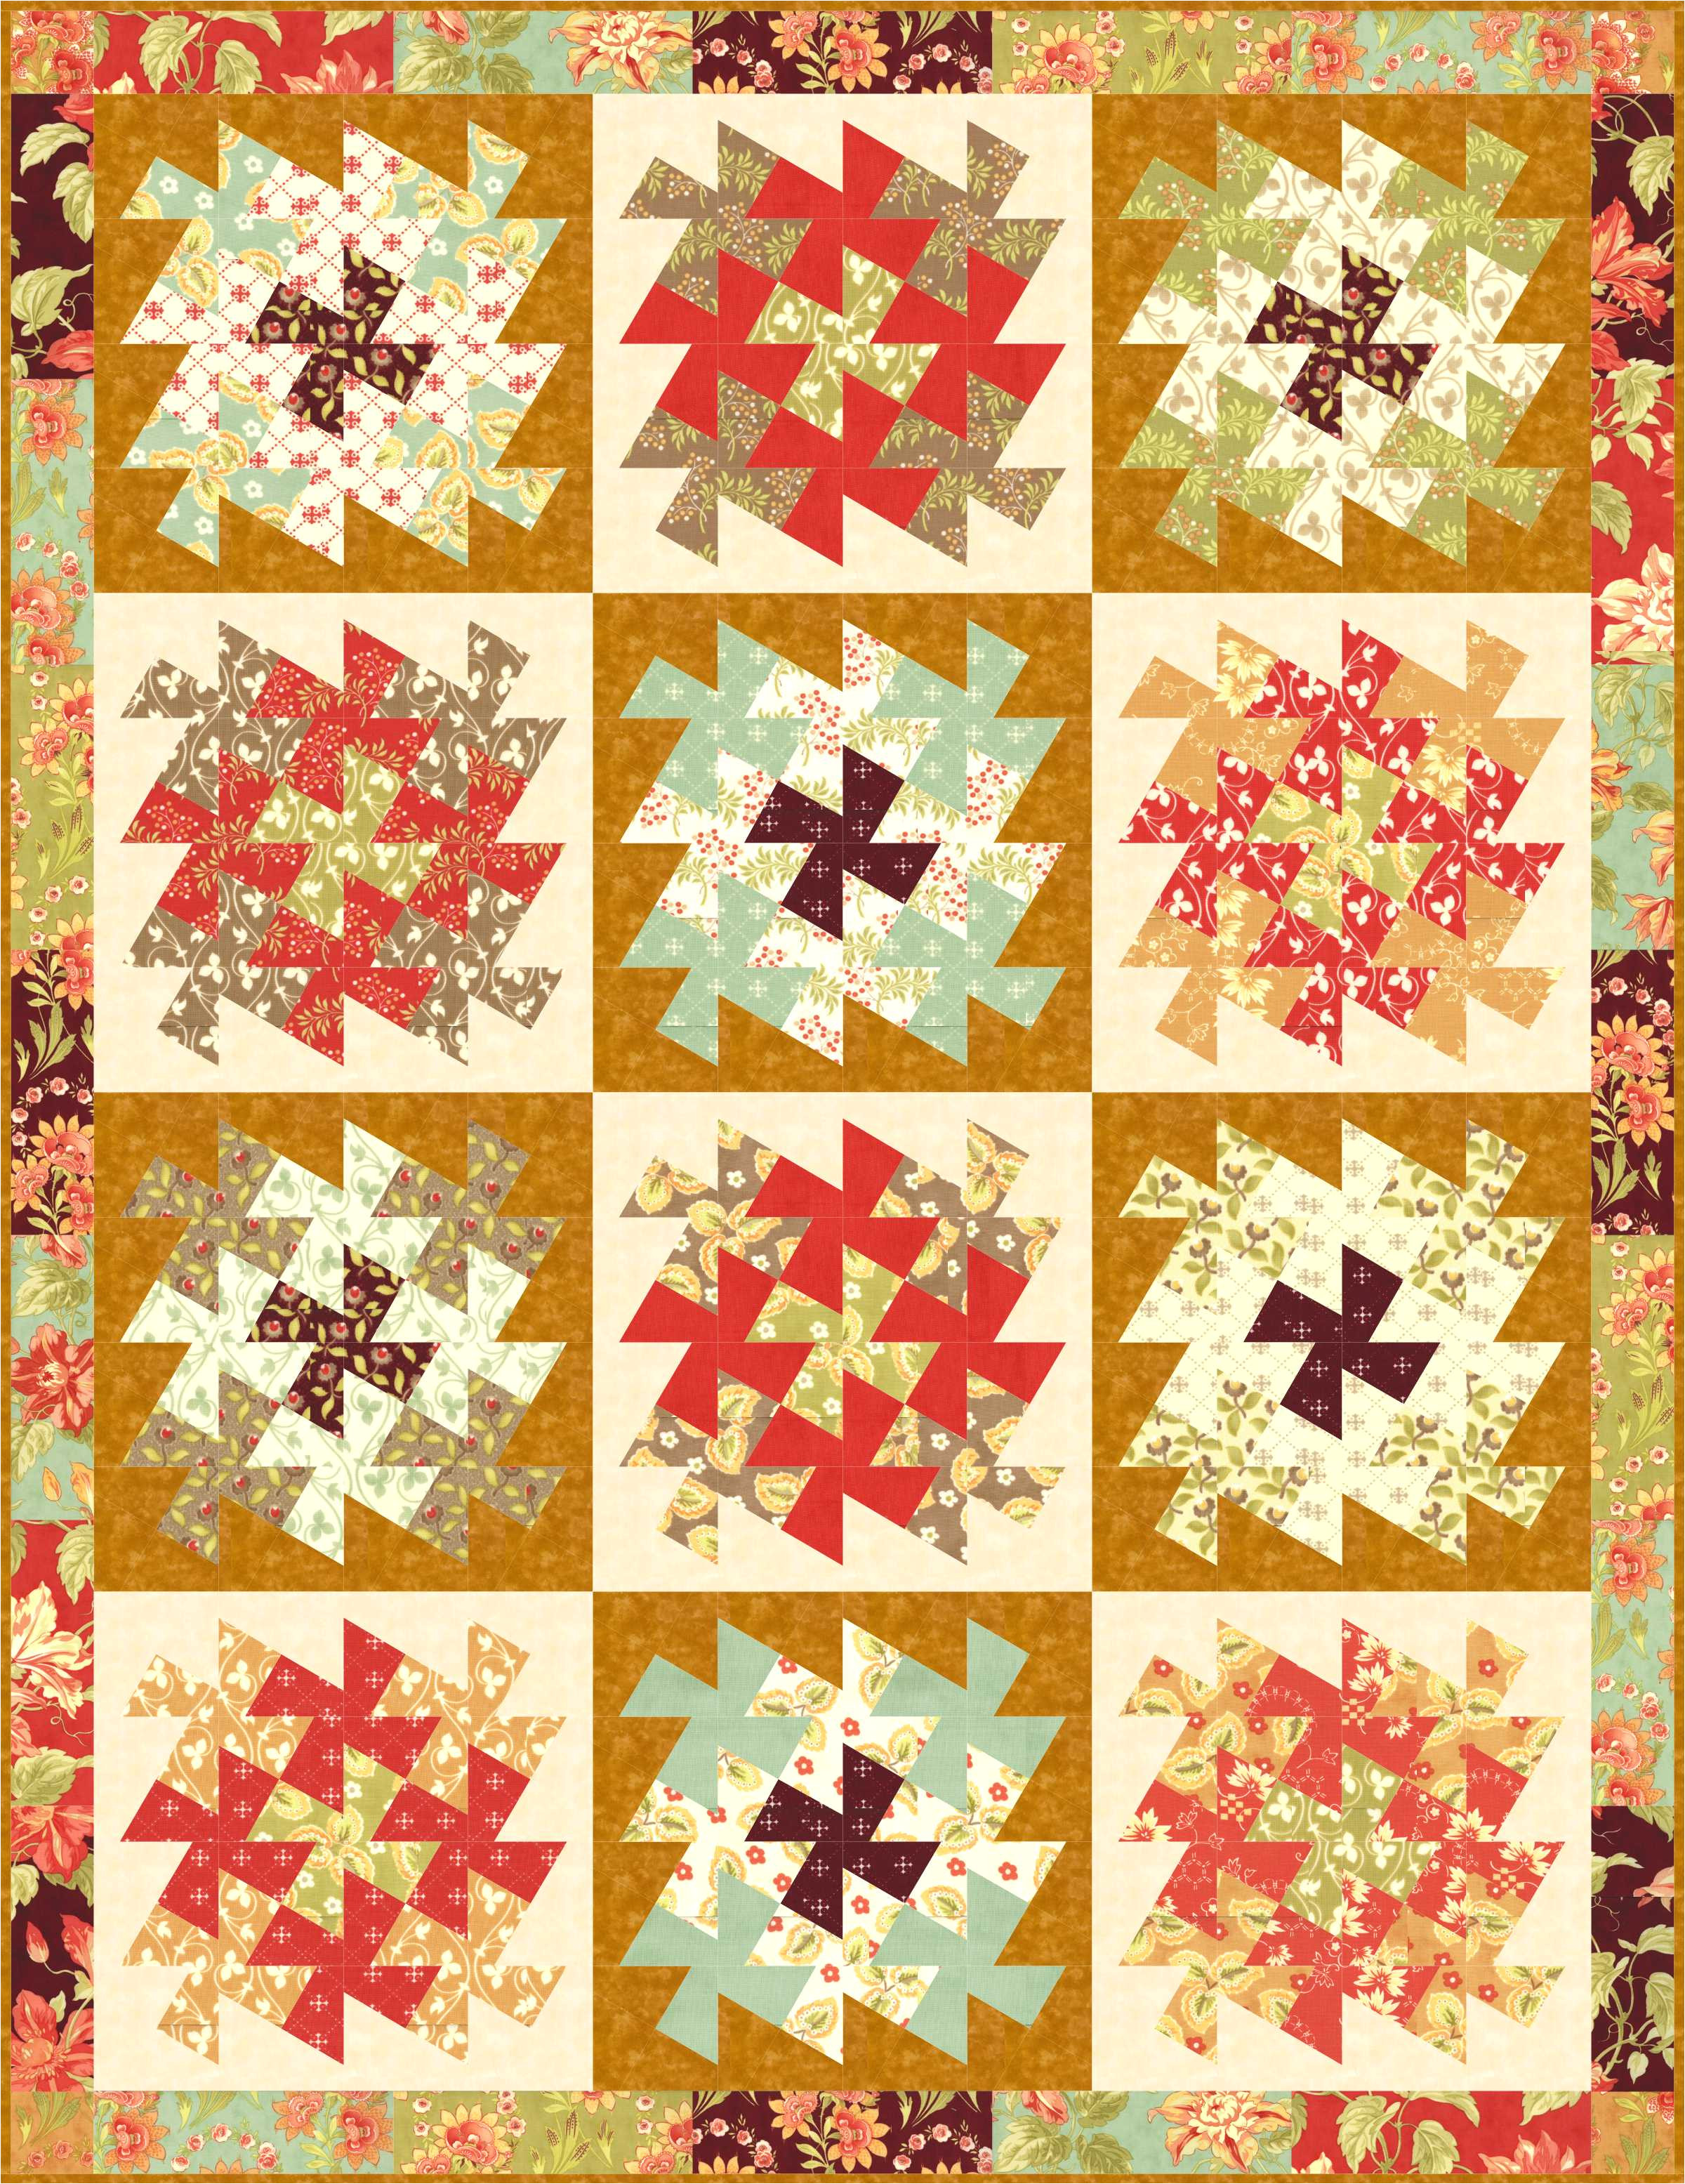 pinwheel patterns for lil twister and twister tool